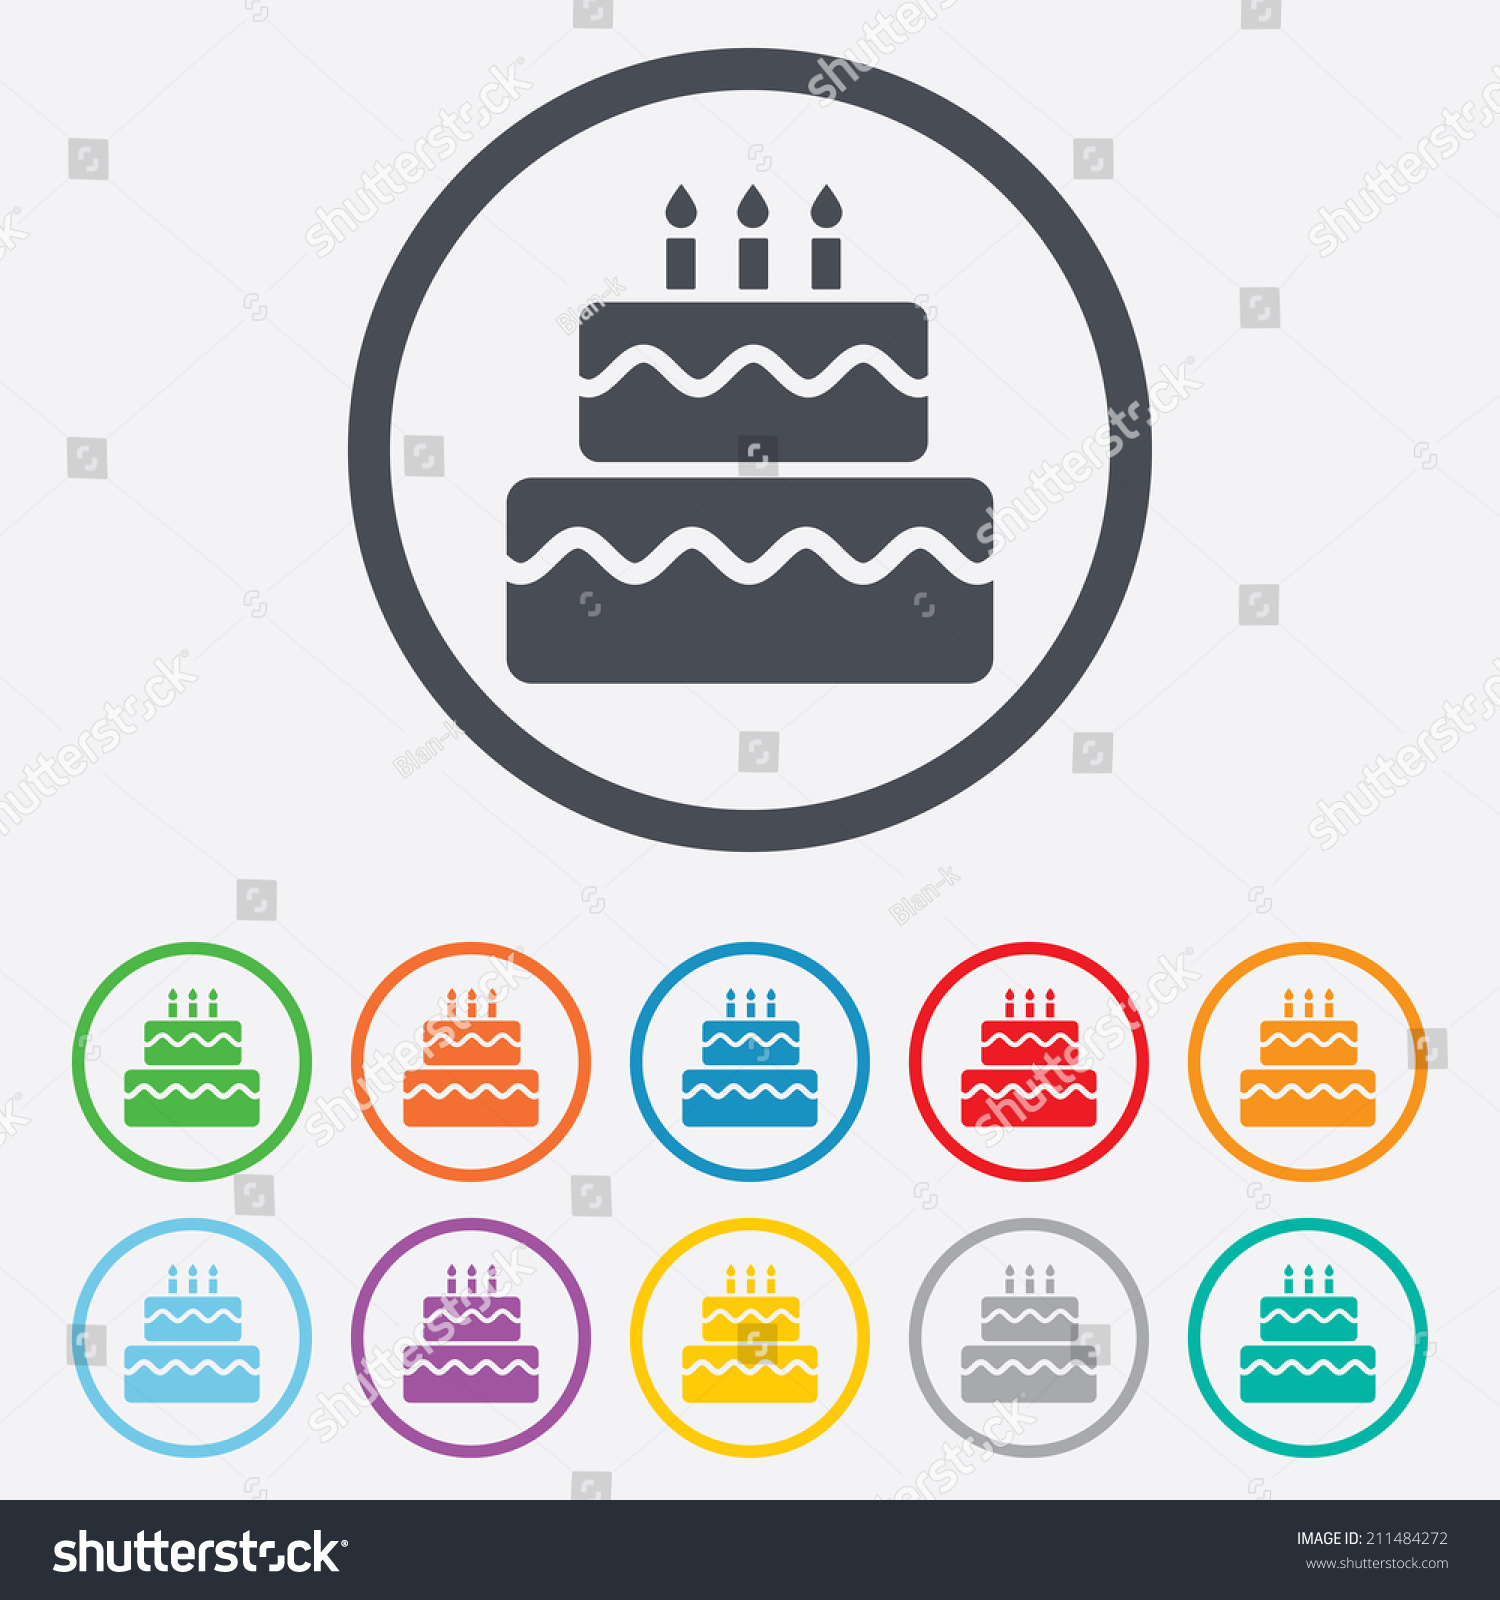 Birthday Cake Sign Icon Cake Burning Stock Vector HD Royalty Free